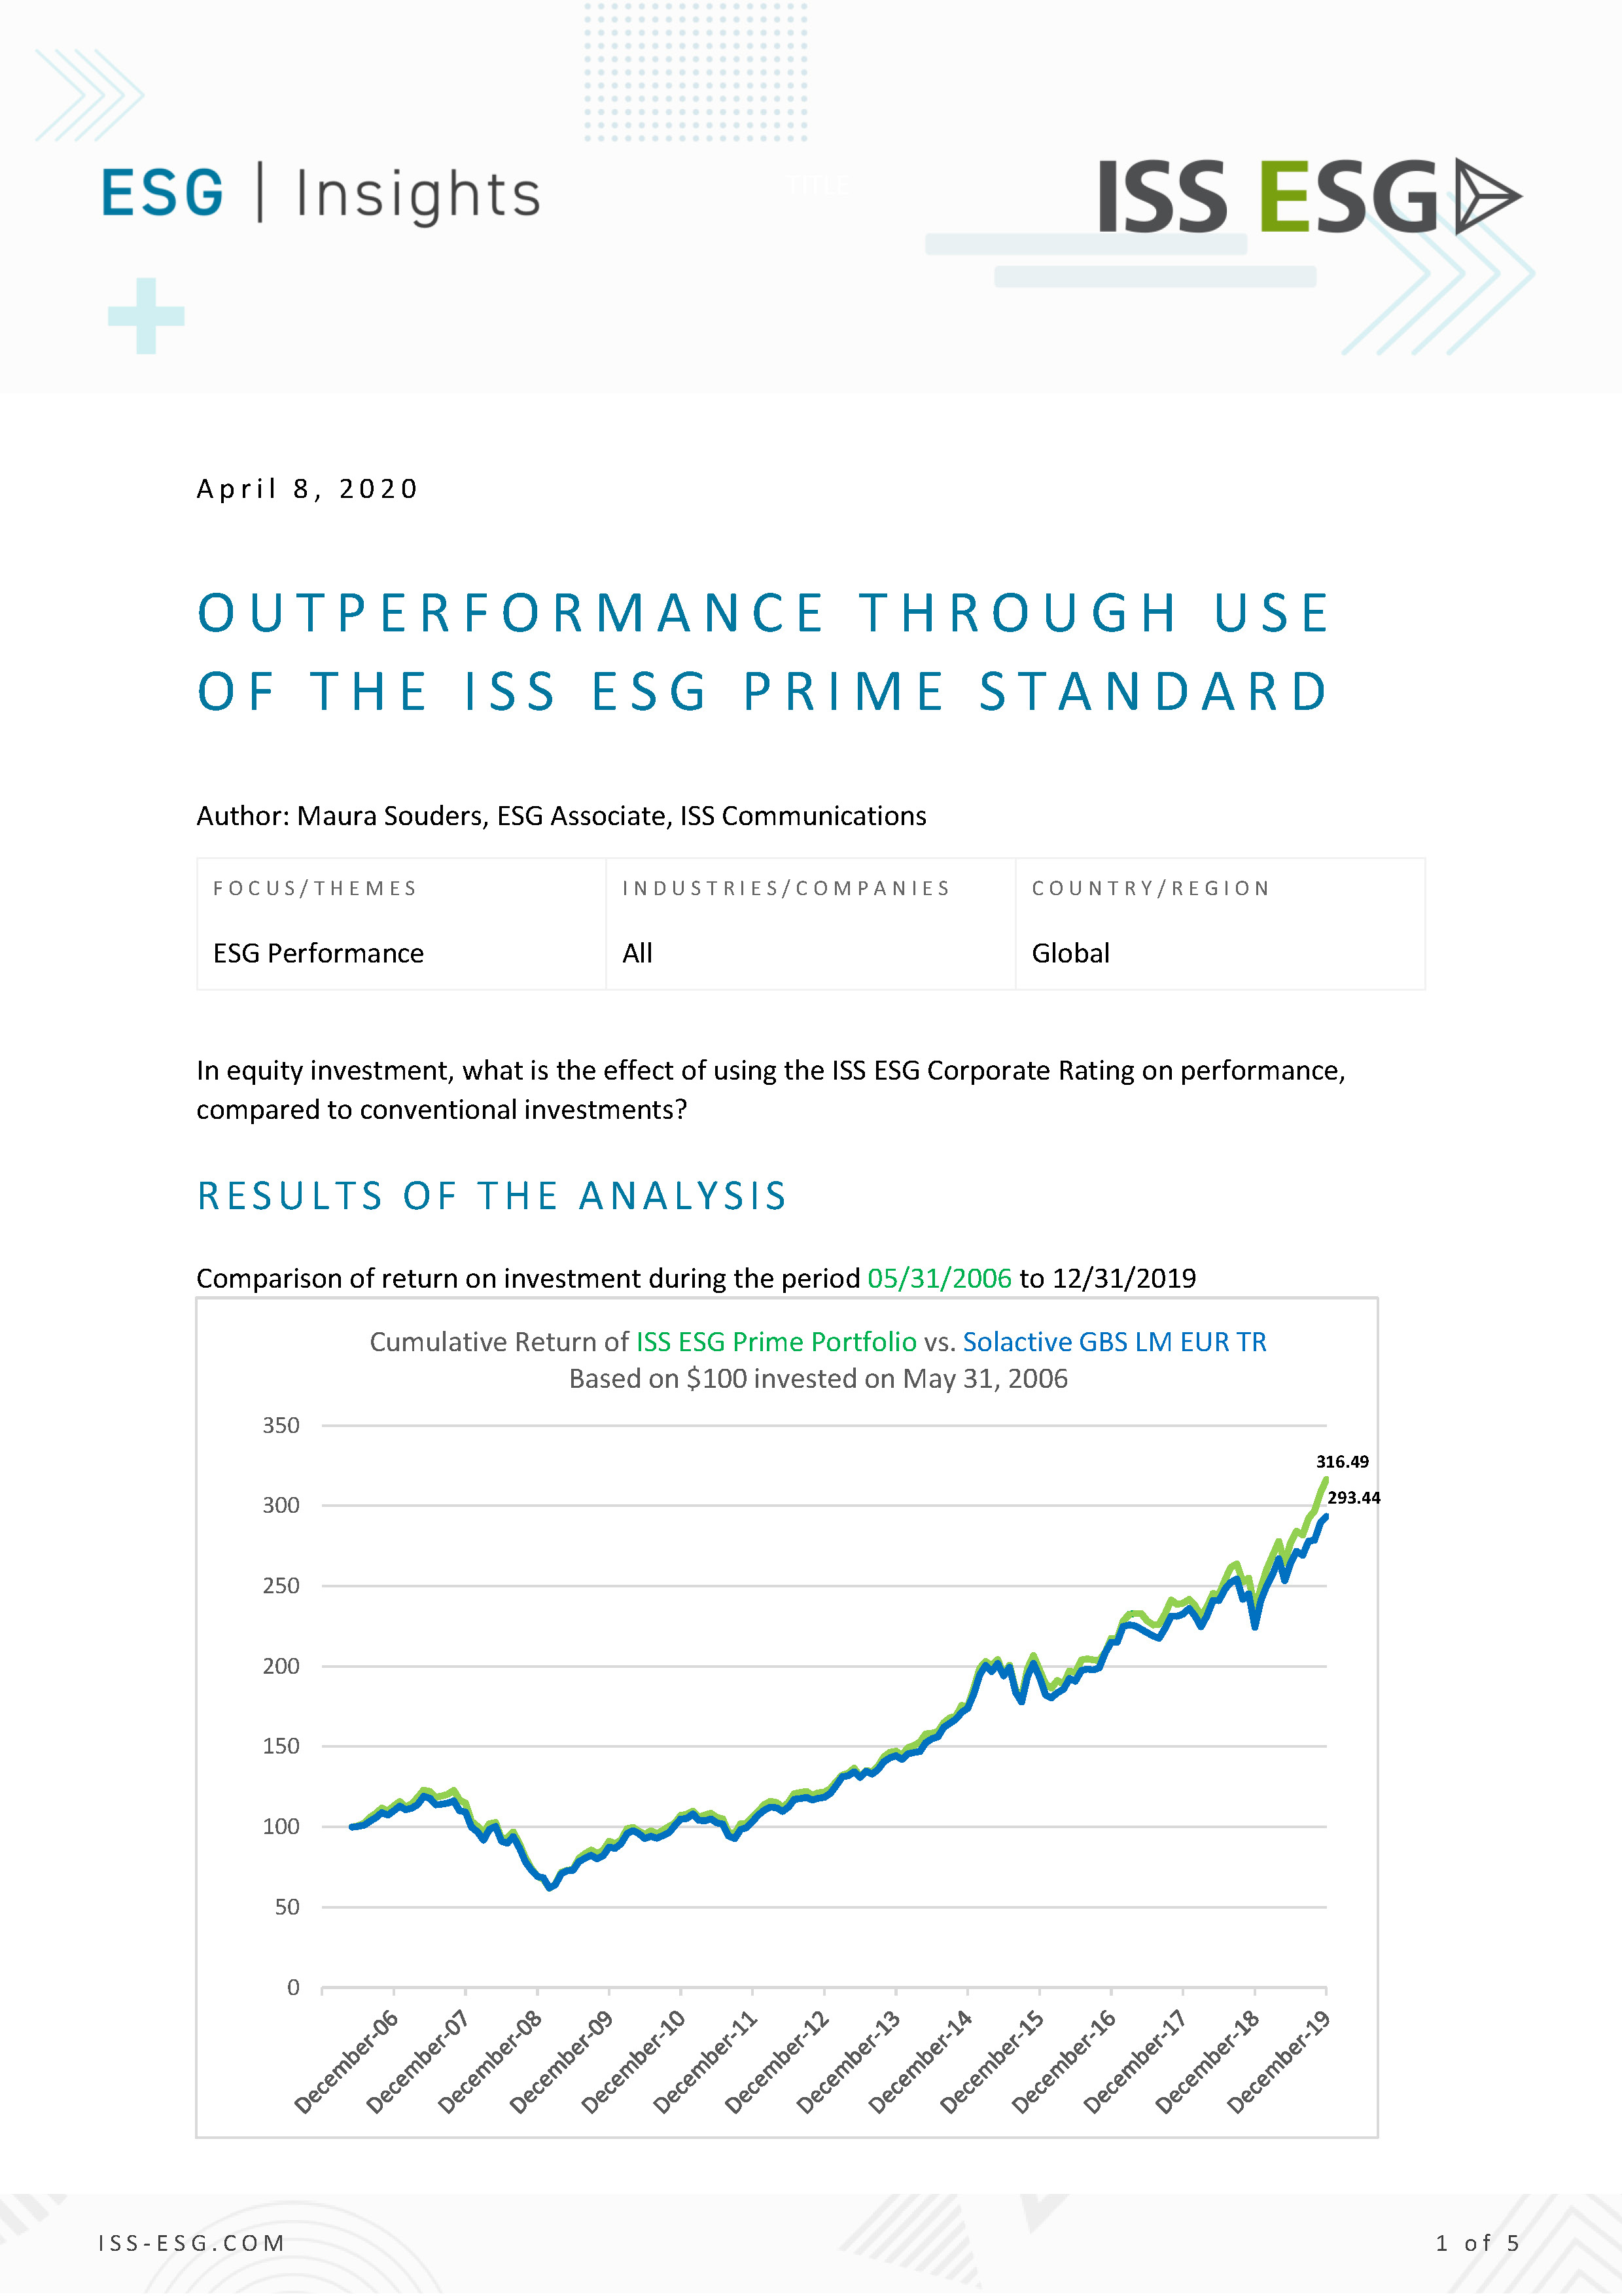 Outperformance Through Use of the ISS ESG Prime Standard